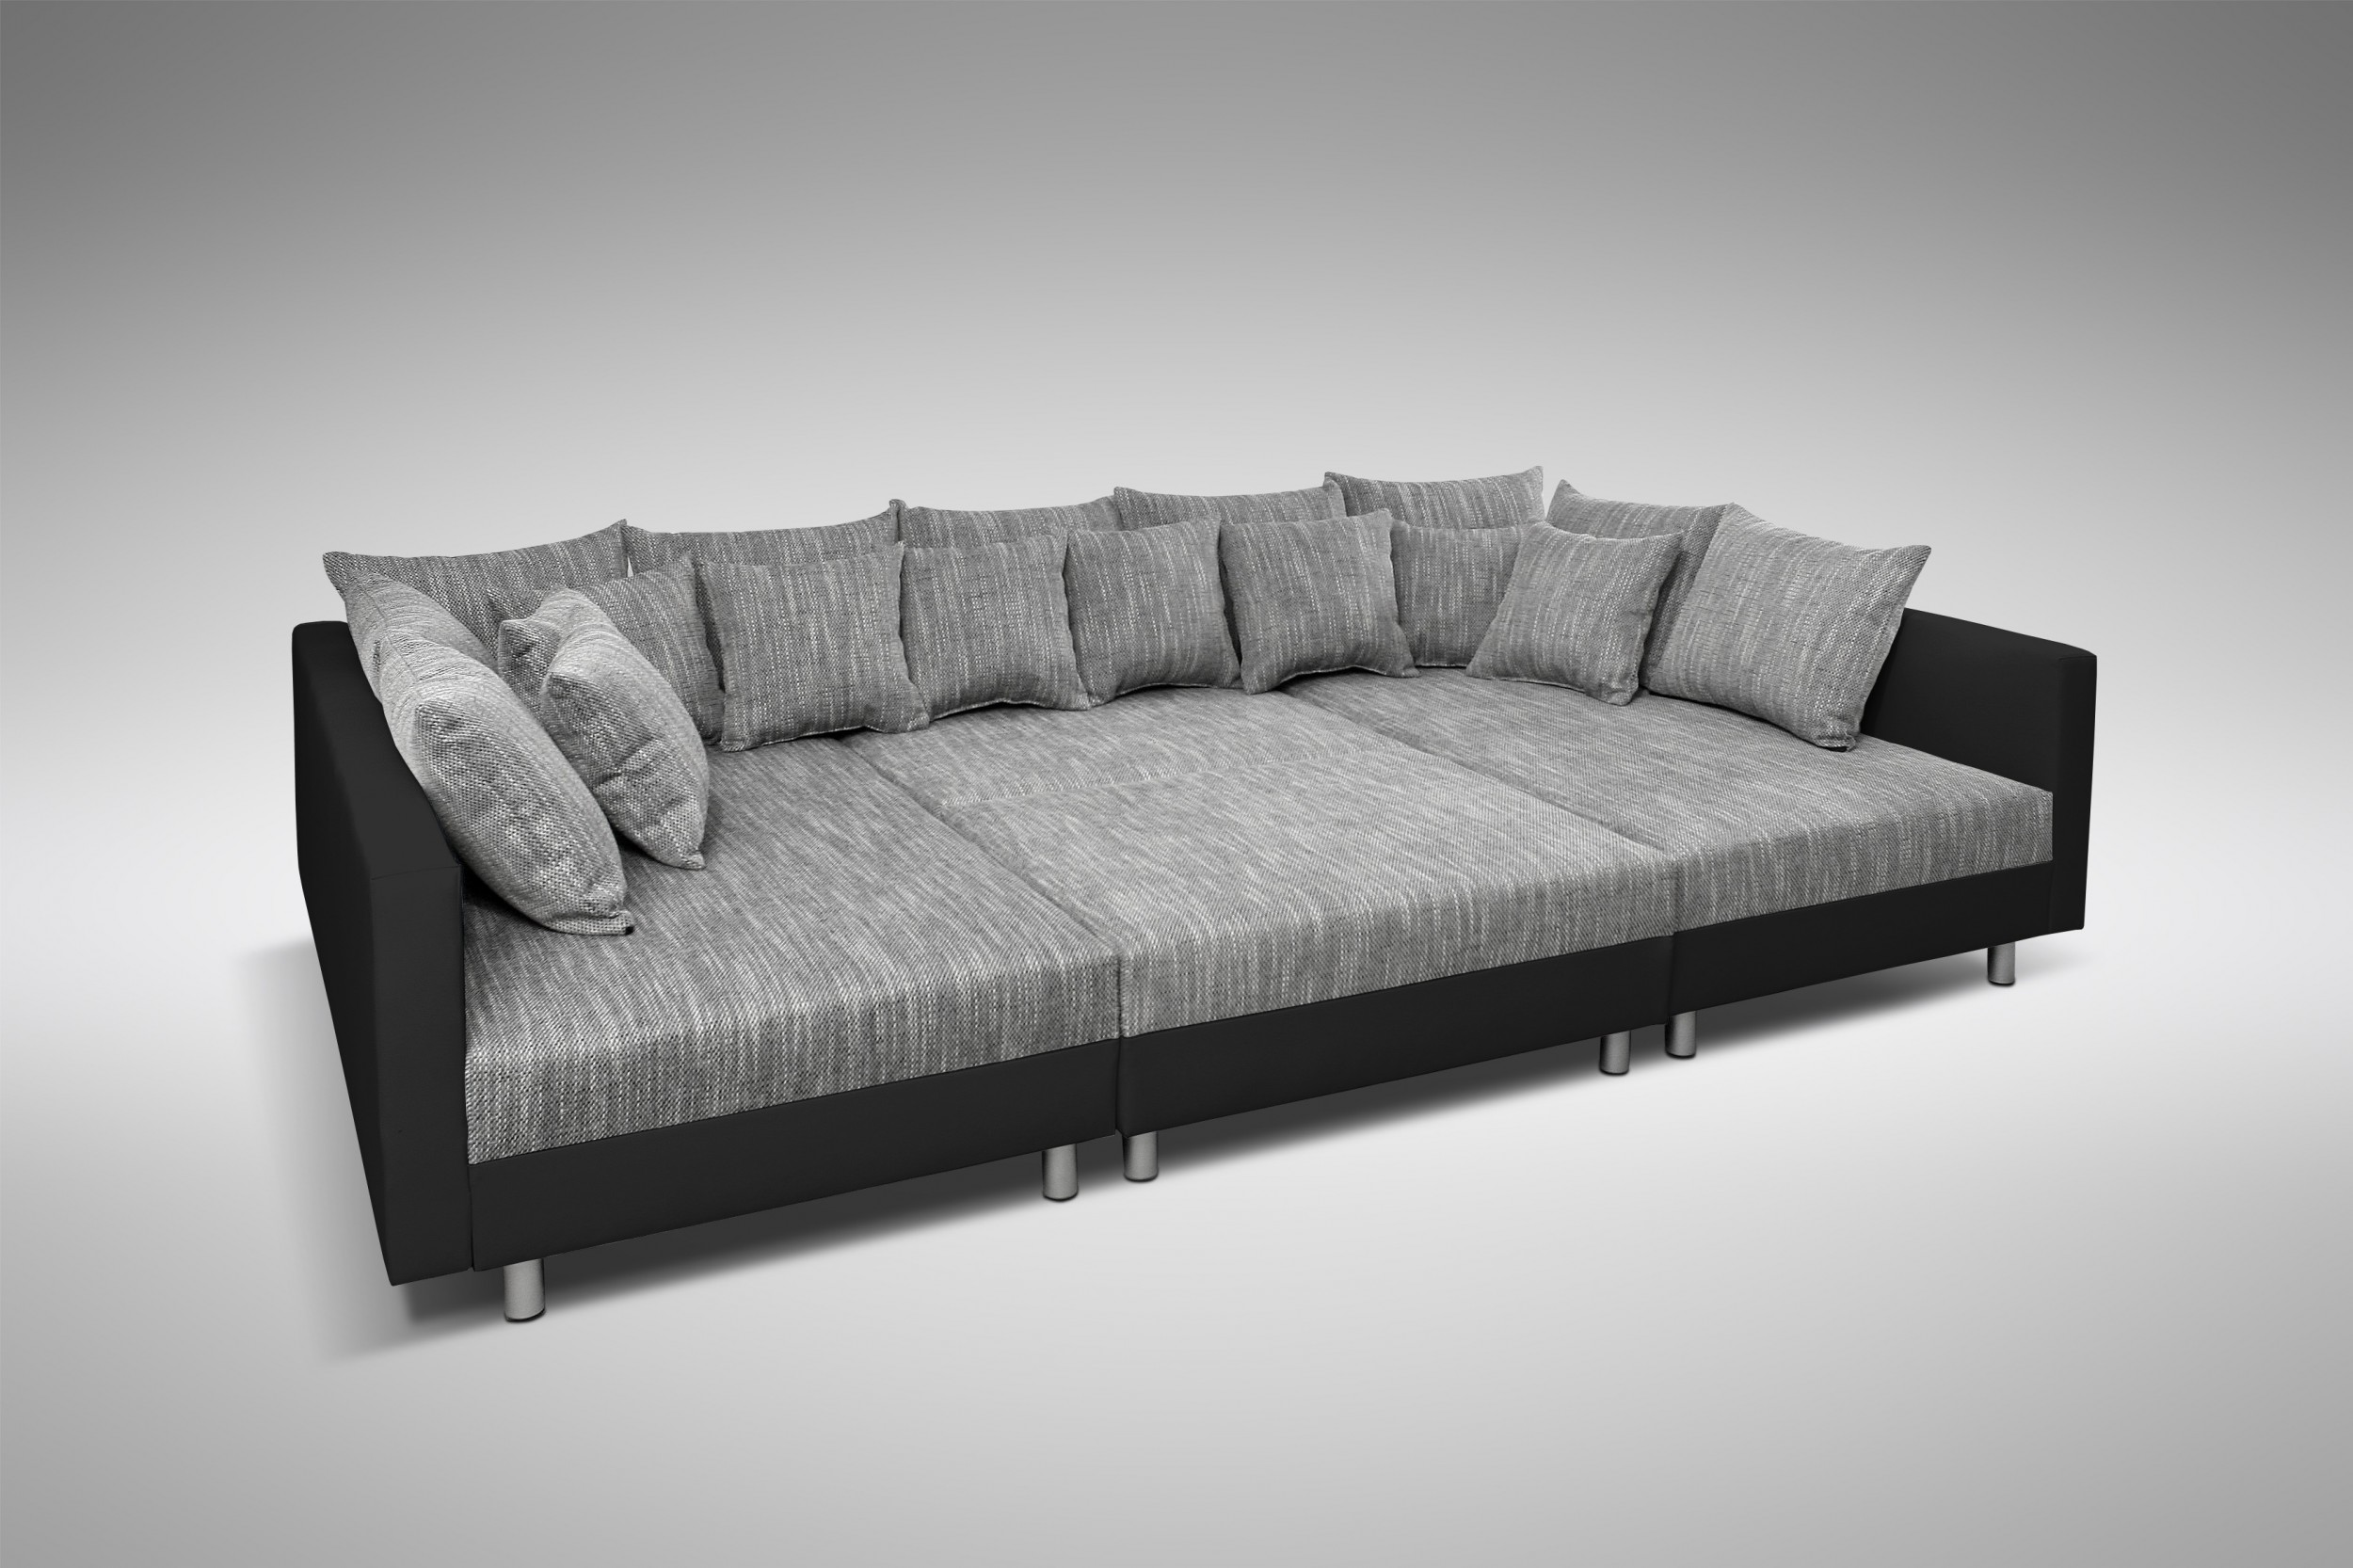 sofa couch ecksofa eckcouch in schwarz hellgrau eckcouch mit hocker minsk xxl polsterm bel sofa. Black Bedroom Furniture Sets. Home Design Ideas